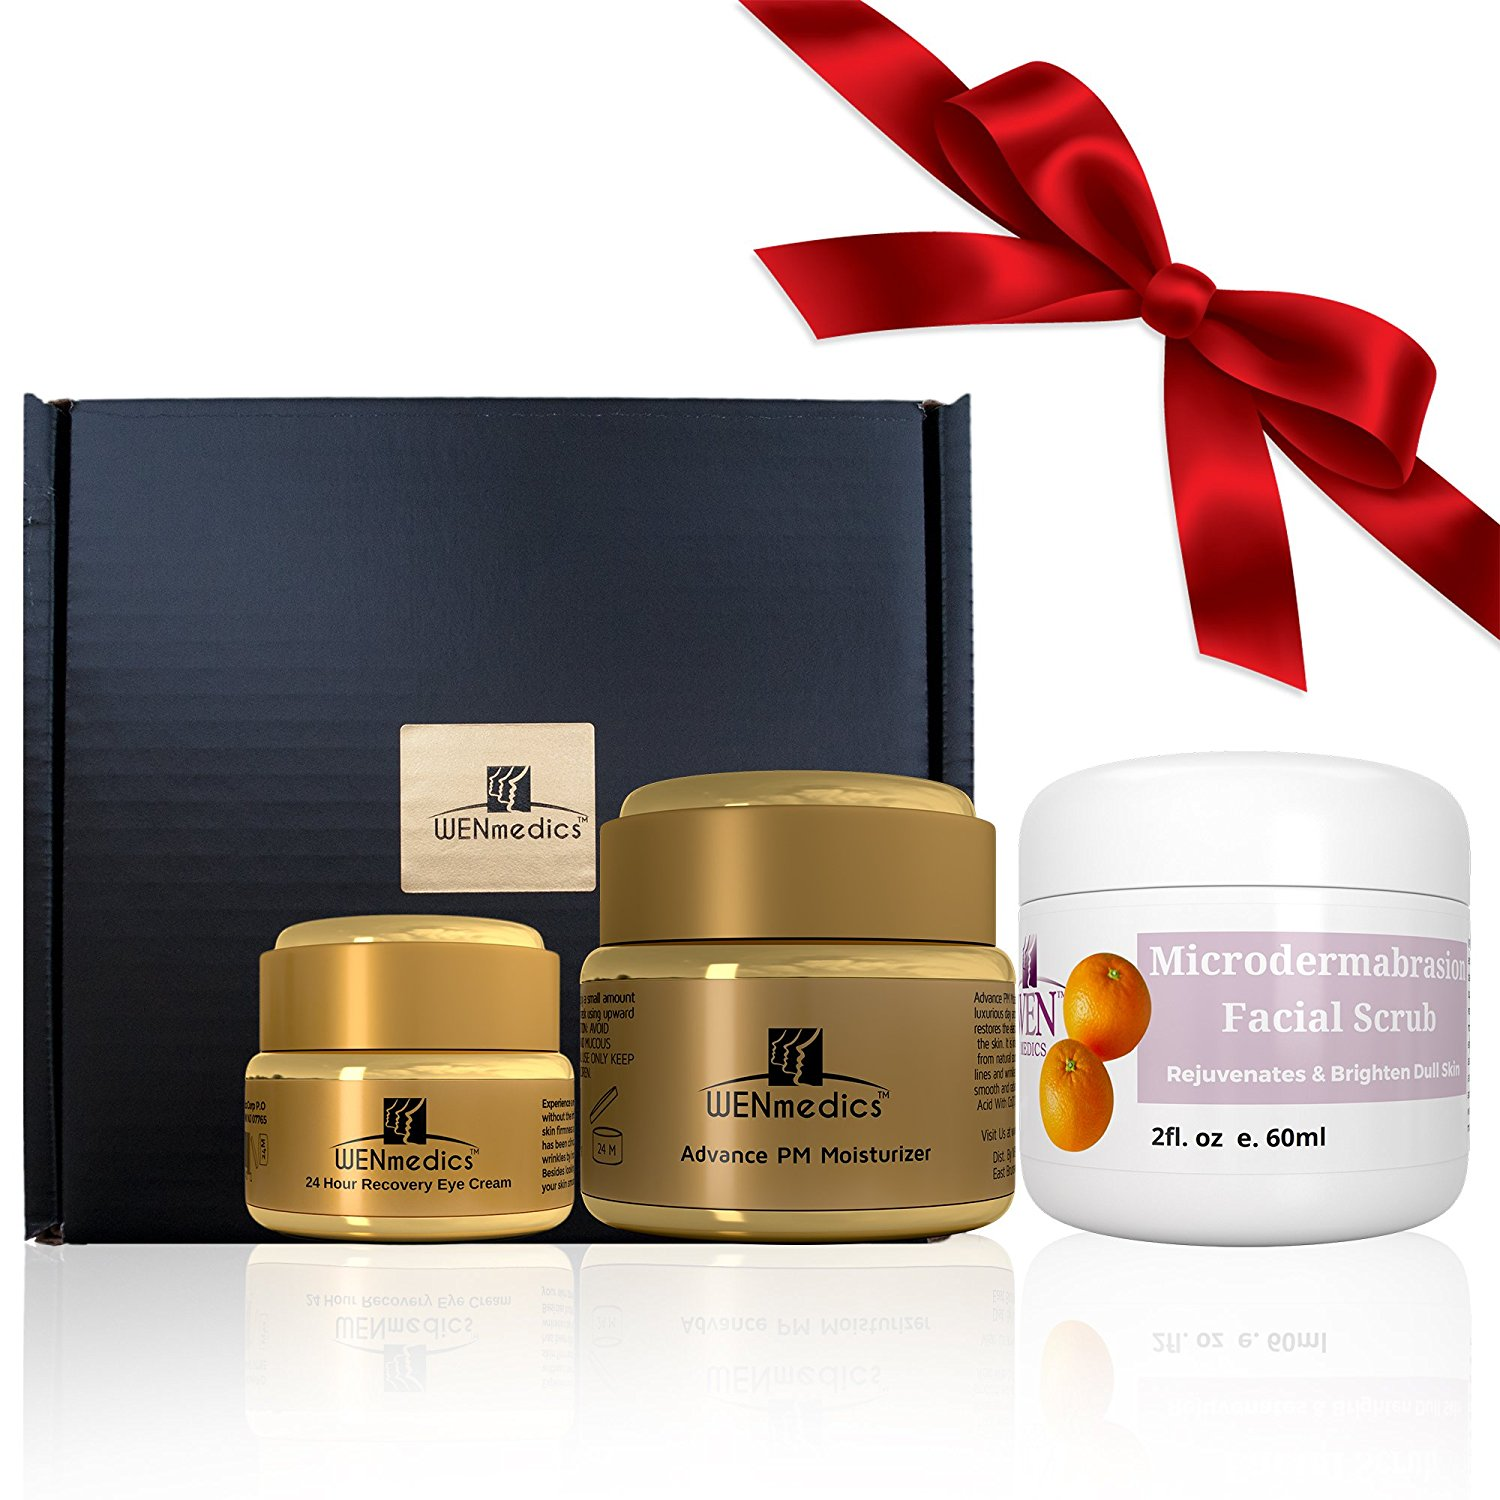 New Anti-aging 3 step skincare gift set - facial kit comes with Exfoliating Scrub, Facial Lotion & Under Eye Treatment - enjoy youthful radiant smoother-looking skin today - Dry Skin Face Kit